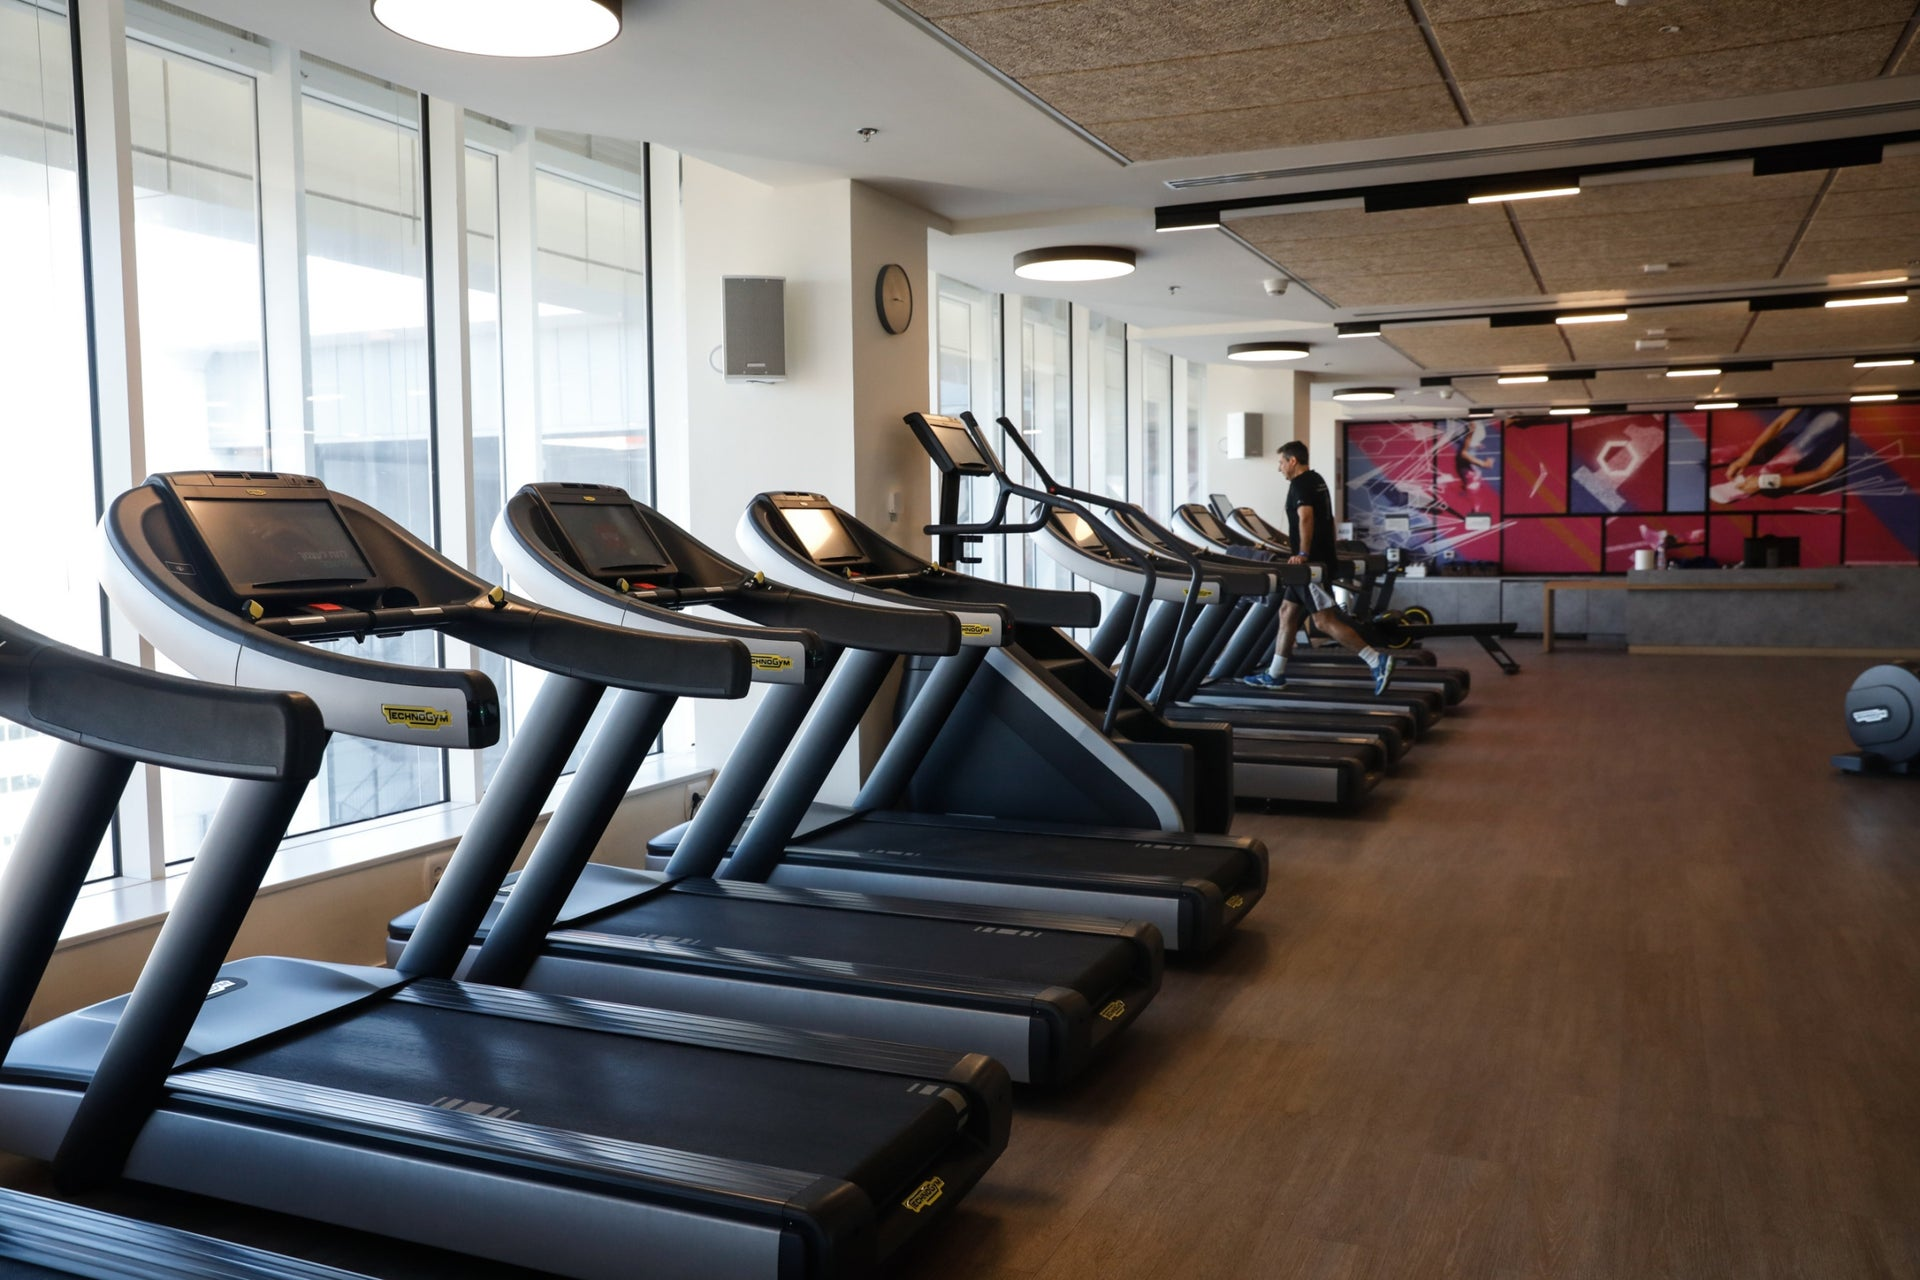 The building's piece de resistance is the services floor, which includes a fitness room, a hairdresser, a physiotherapy room and much more.